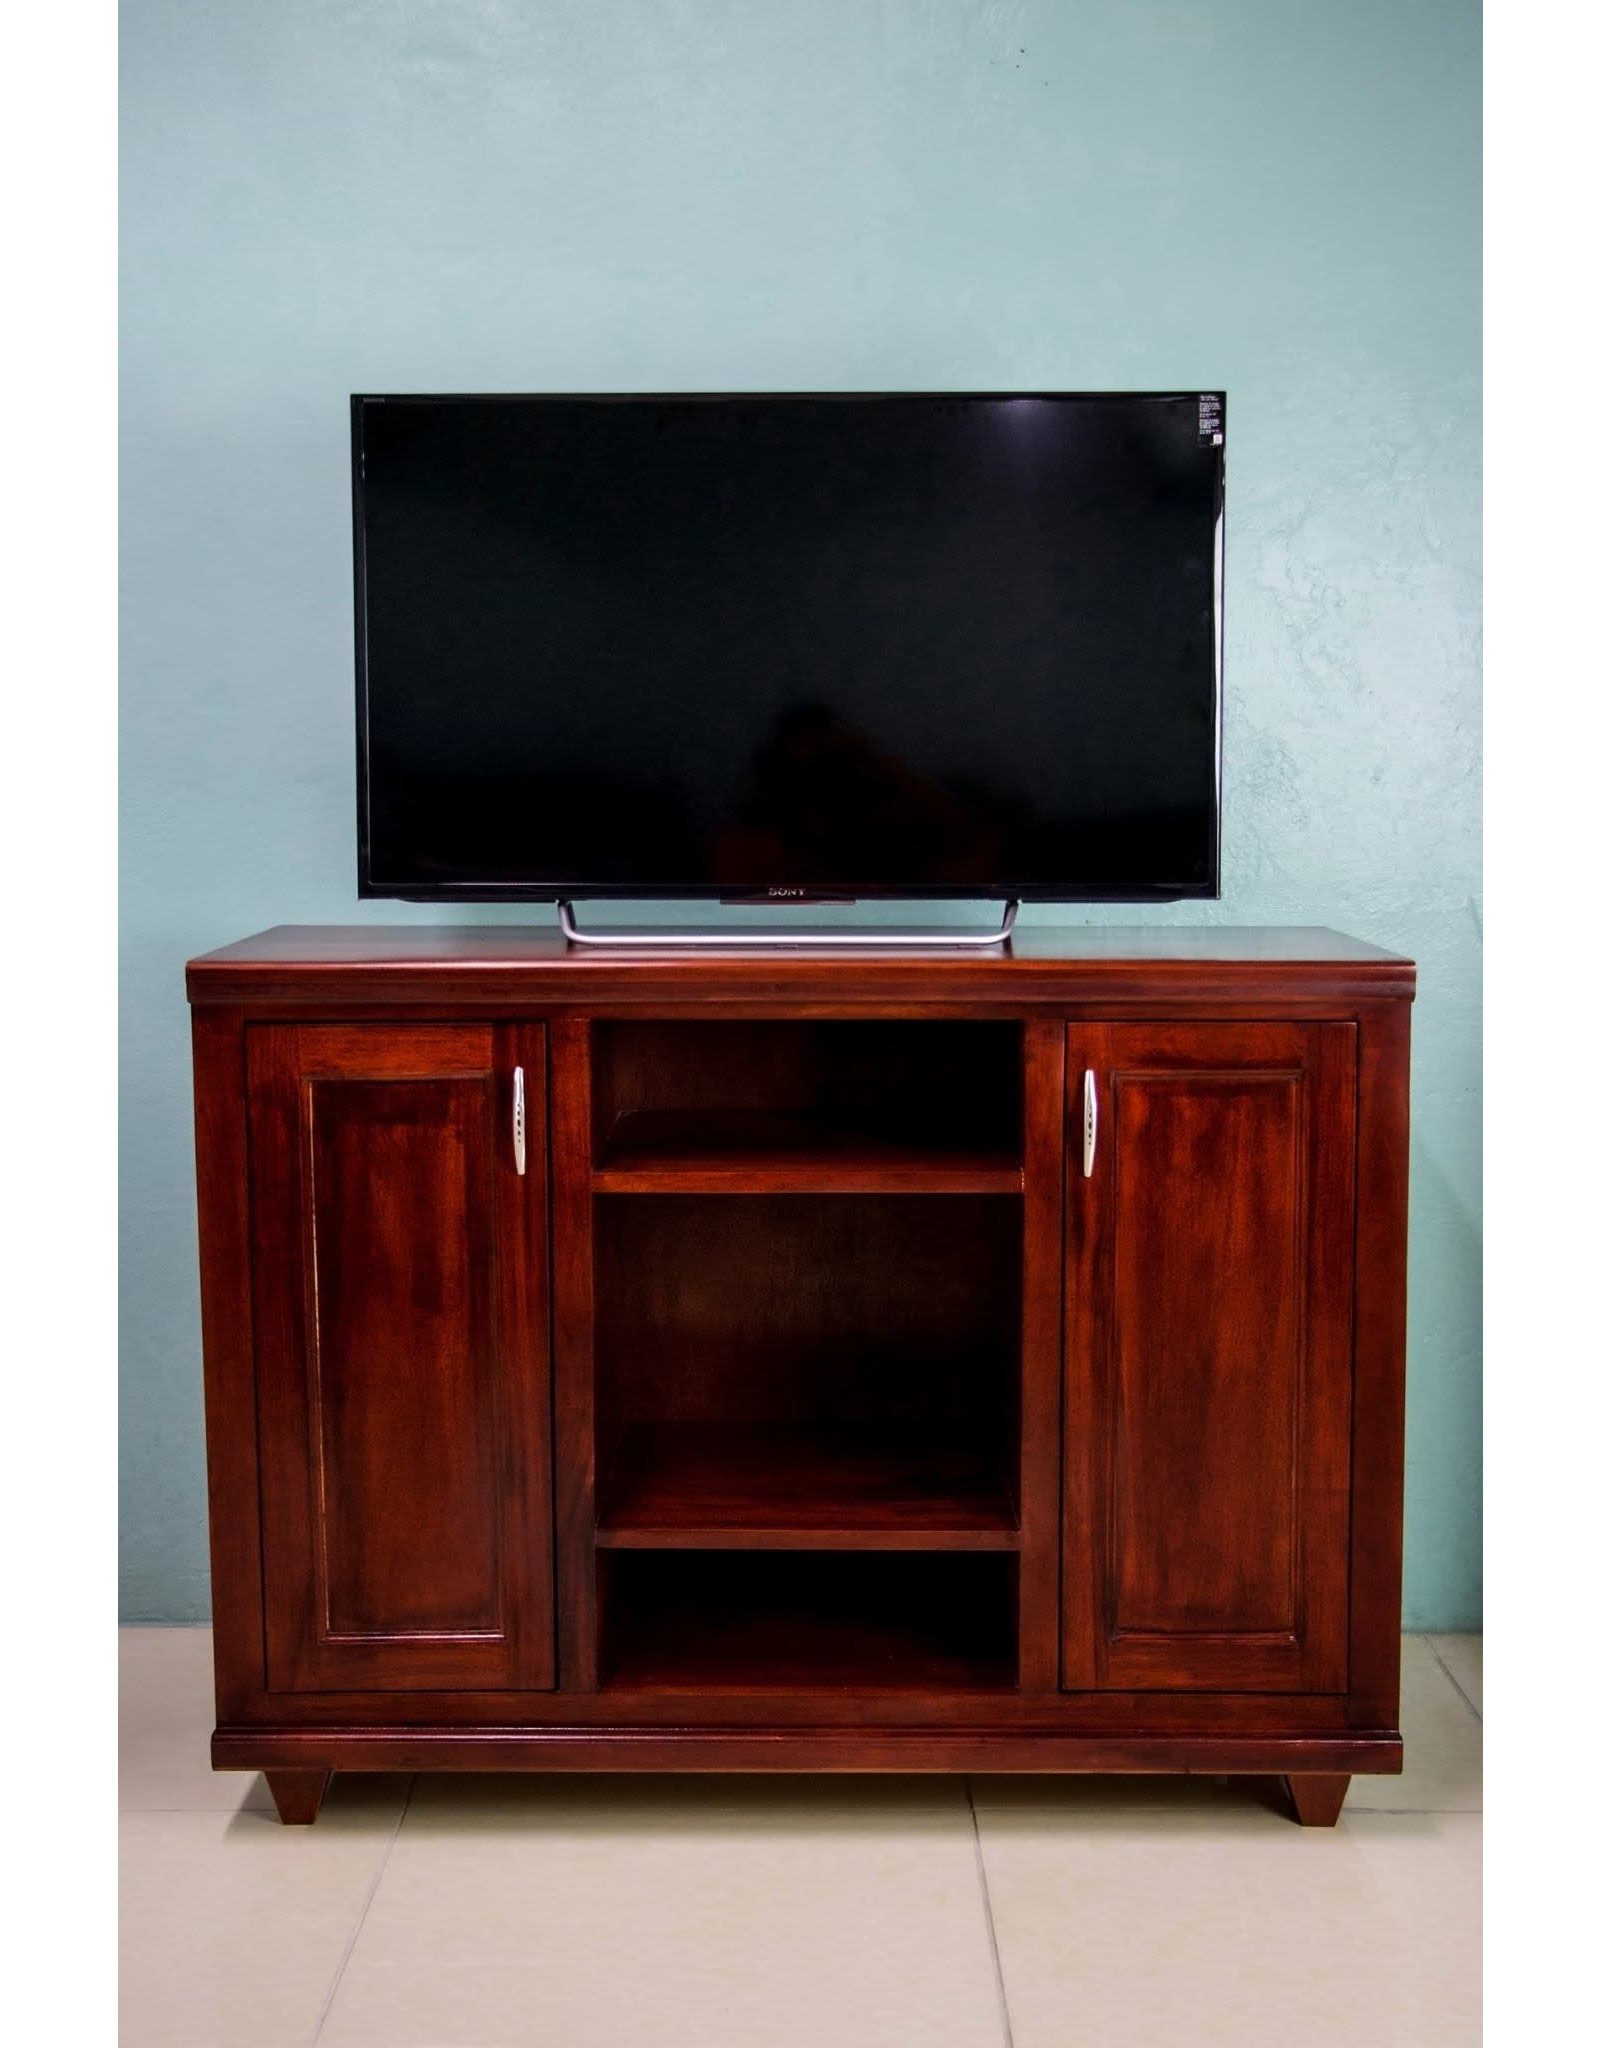 Classic T.V Stand